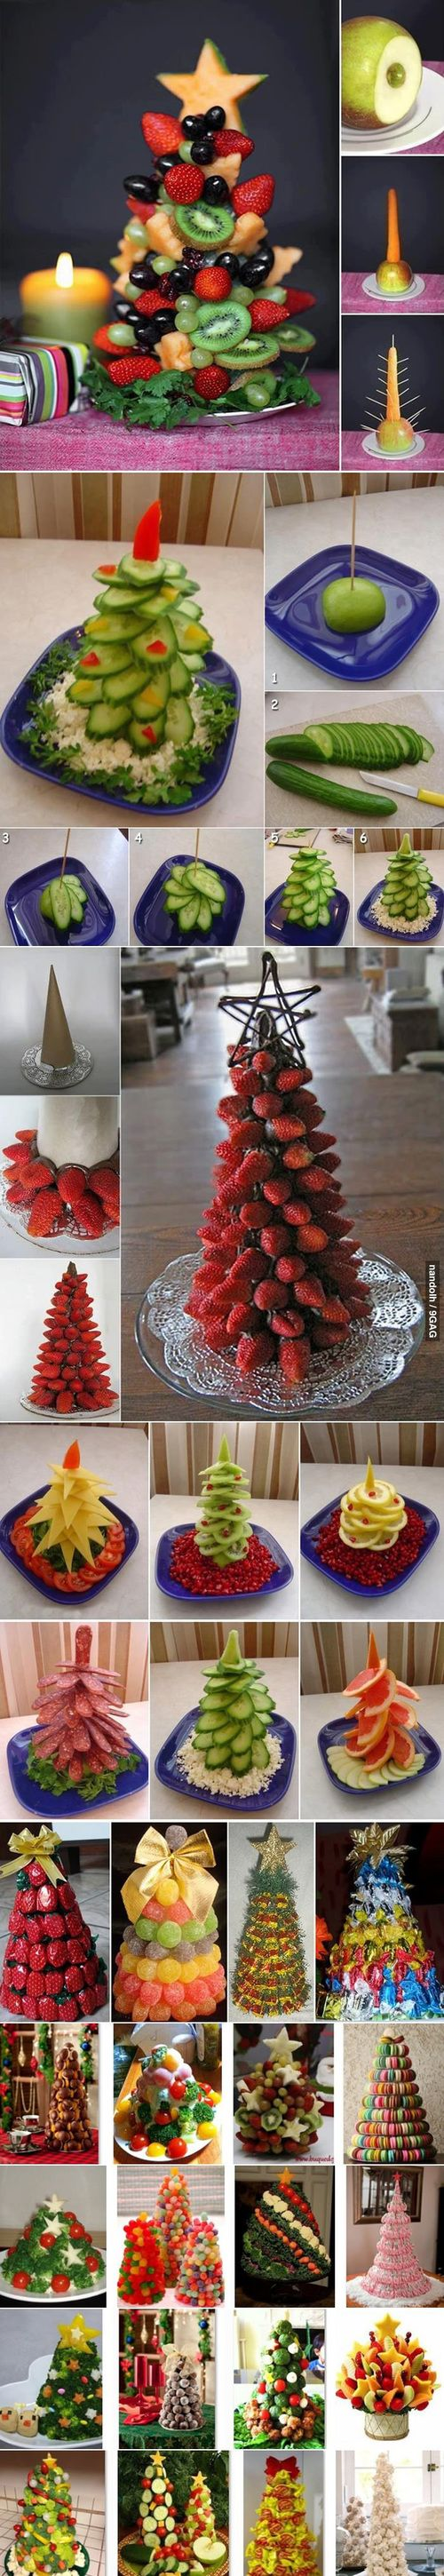 DIY food christmas trees, love this idea for a party